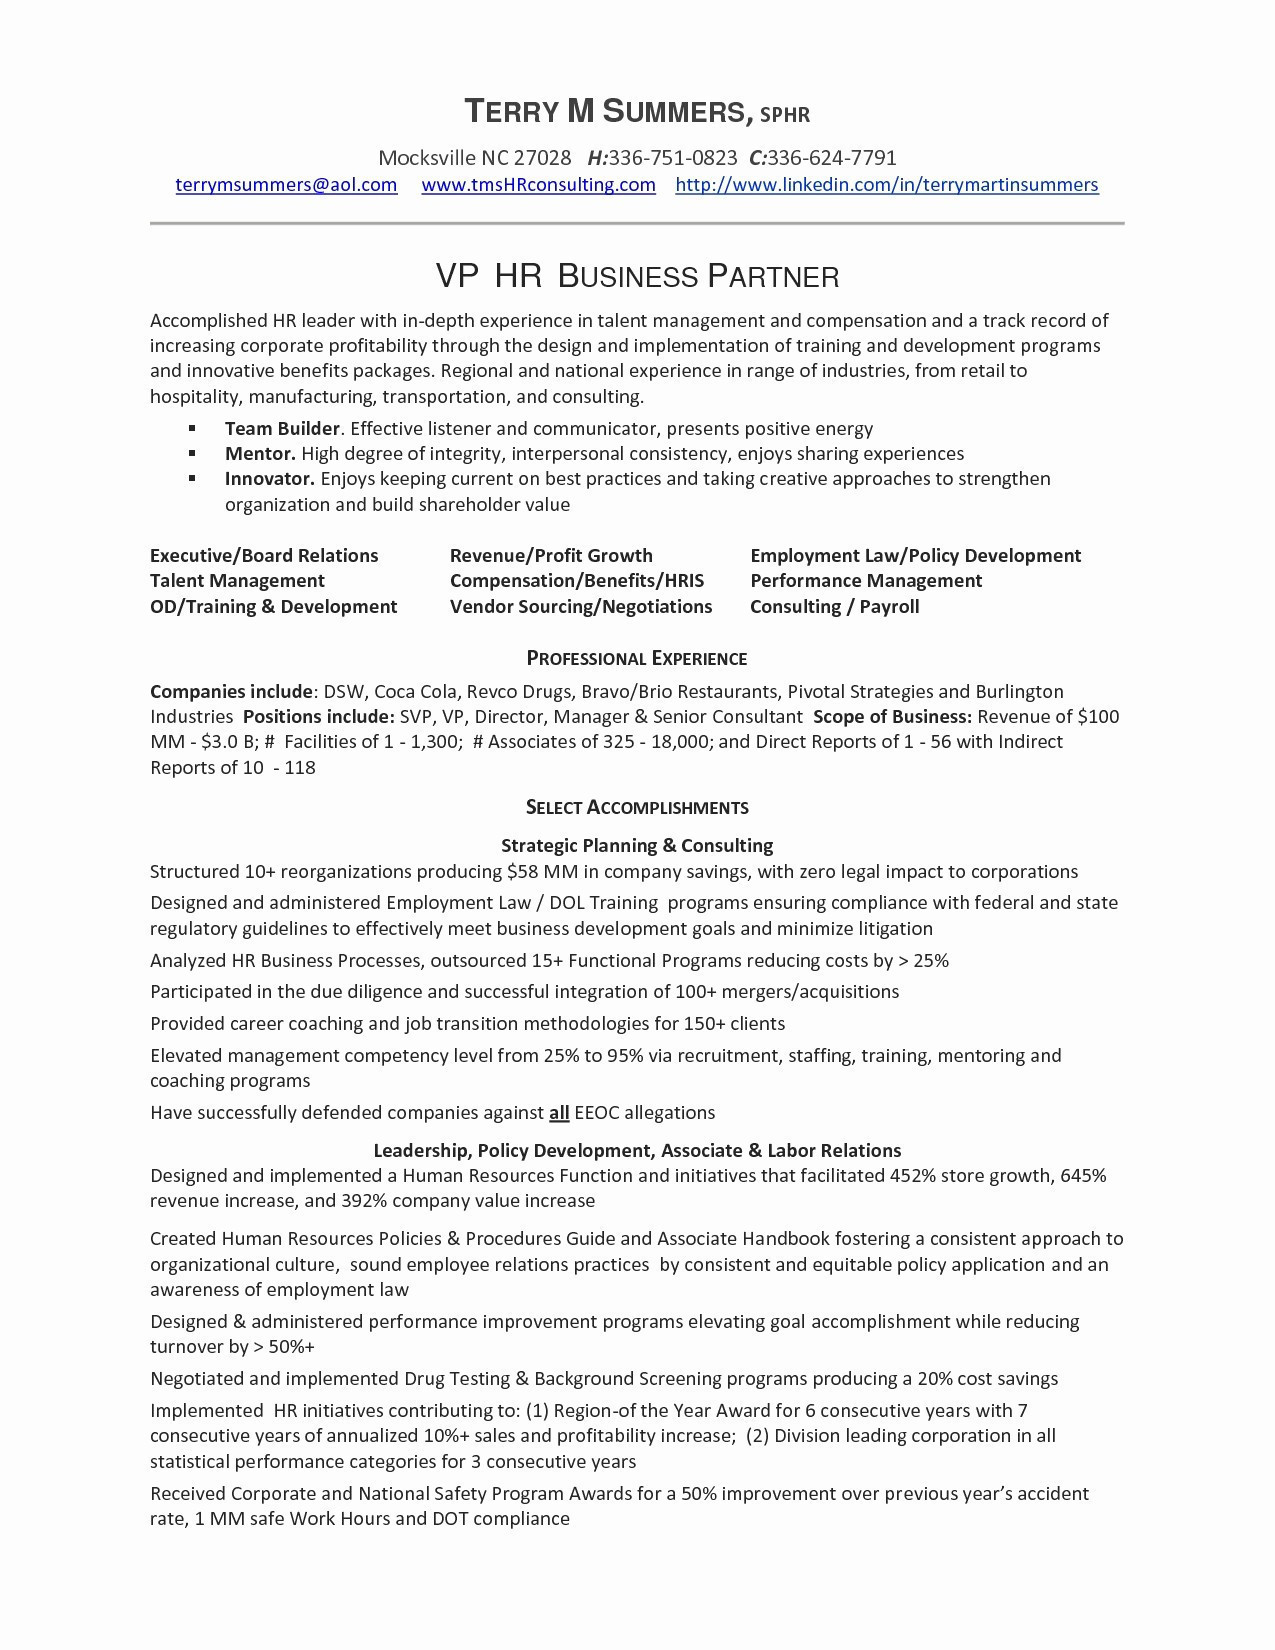 Vp Resume Template - Resume Templates for Construction Workers Fresh Construction Worker